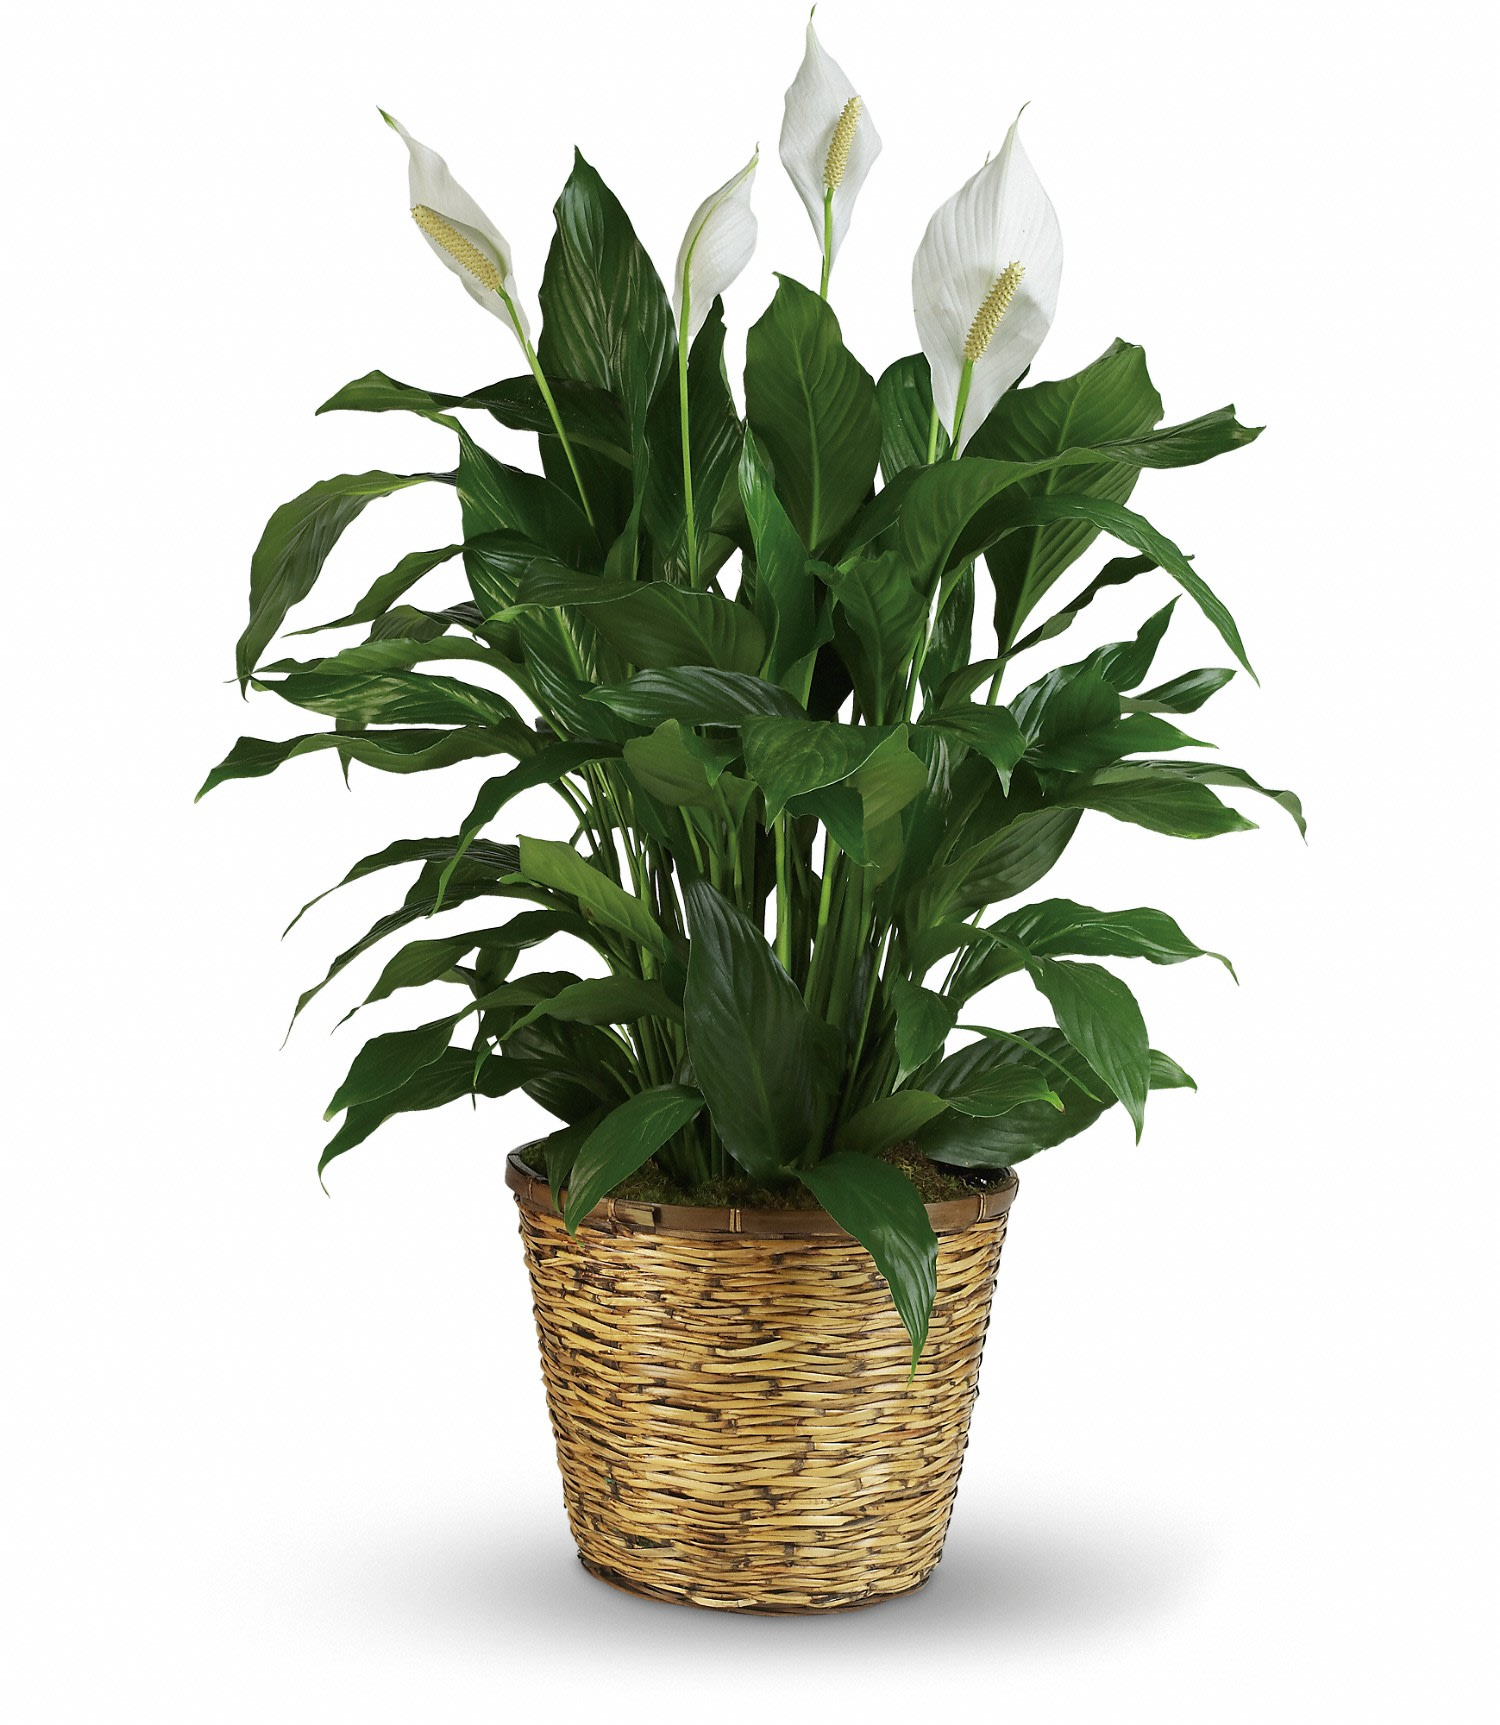 Simply Elegant Peace Lily in Cherry Hill, NJ | Jacqueline's Flowers on corn plant houseplant, bamboo palm houseplant, dragon tree houseplant, kentia palm houseplant, snake plant houseplant, kalanchoe houseplant, begonia houseplant, nephthytis houseplant, rubber plant houseplant, philodendron houseplant, purple wandering jew houseplant, ivy houseplant, cactus houseplant, rubber tree houseplant, schefflera houseplant, dieffenbachia houseplant, boston fern houseplant, peperomia houseplant, dracaena houseplant,